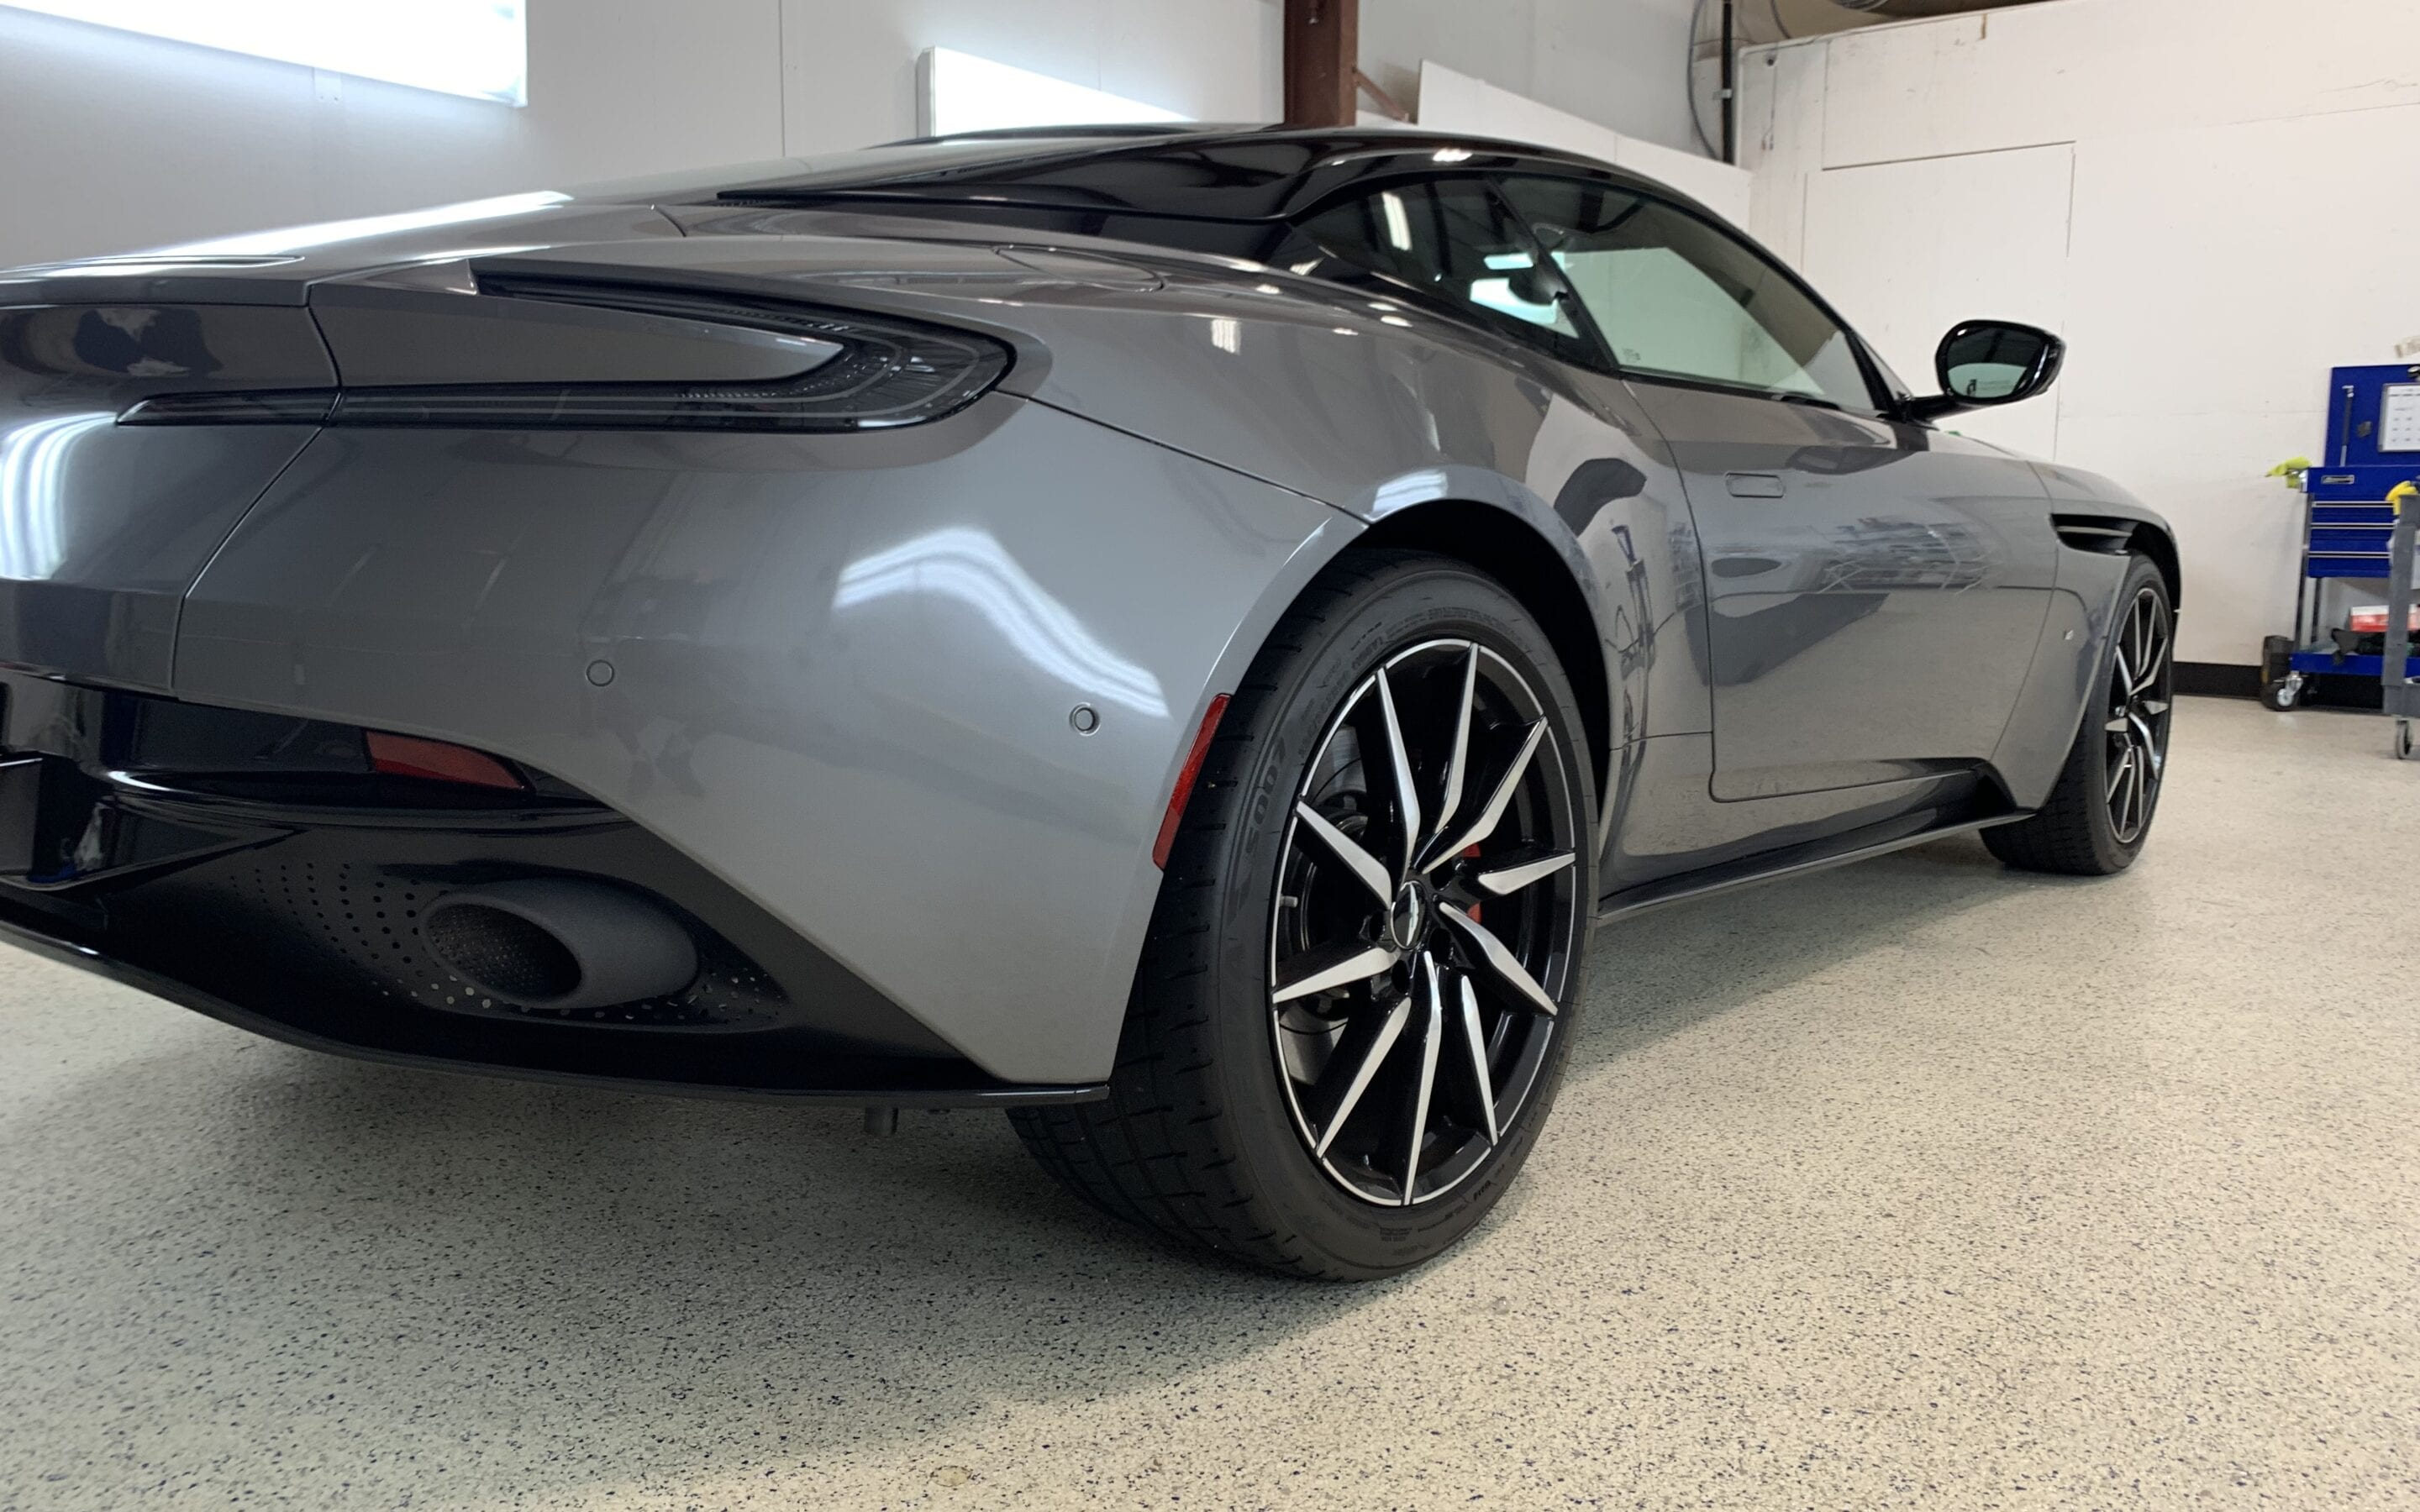 Photo of a New Car Preparation of a 2020 Aston Martin DB11